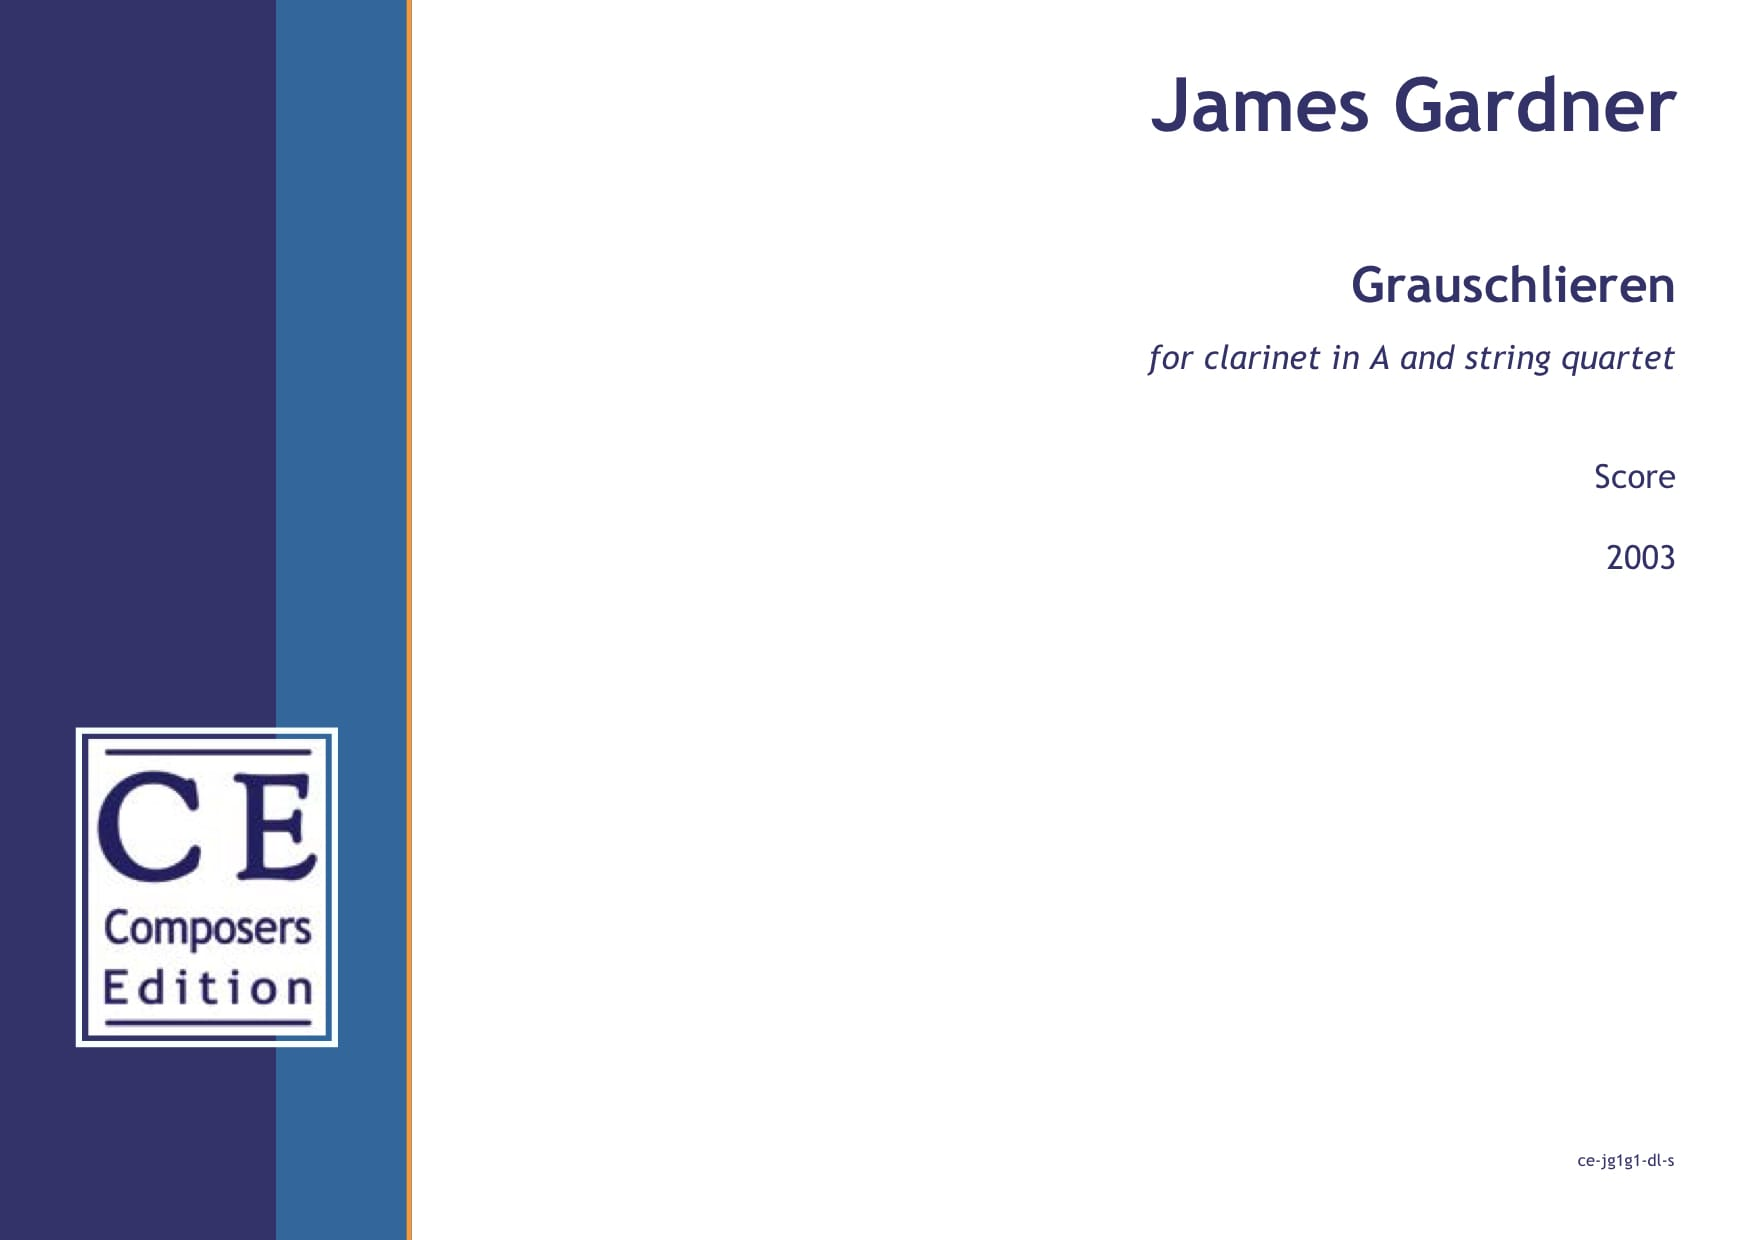 James Gardner: Grauschlieren for clarinet in A and string quartet